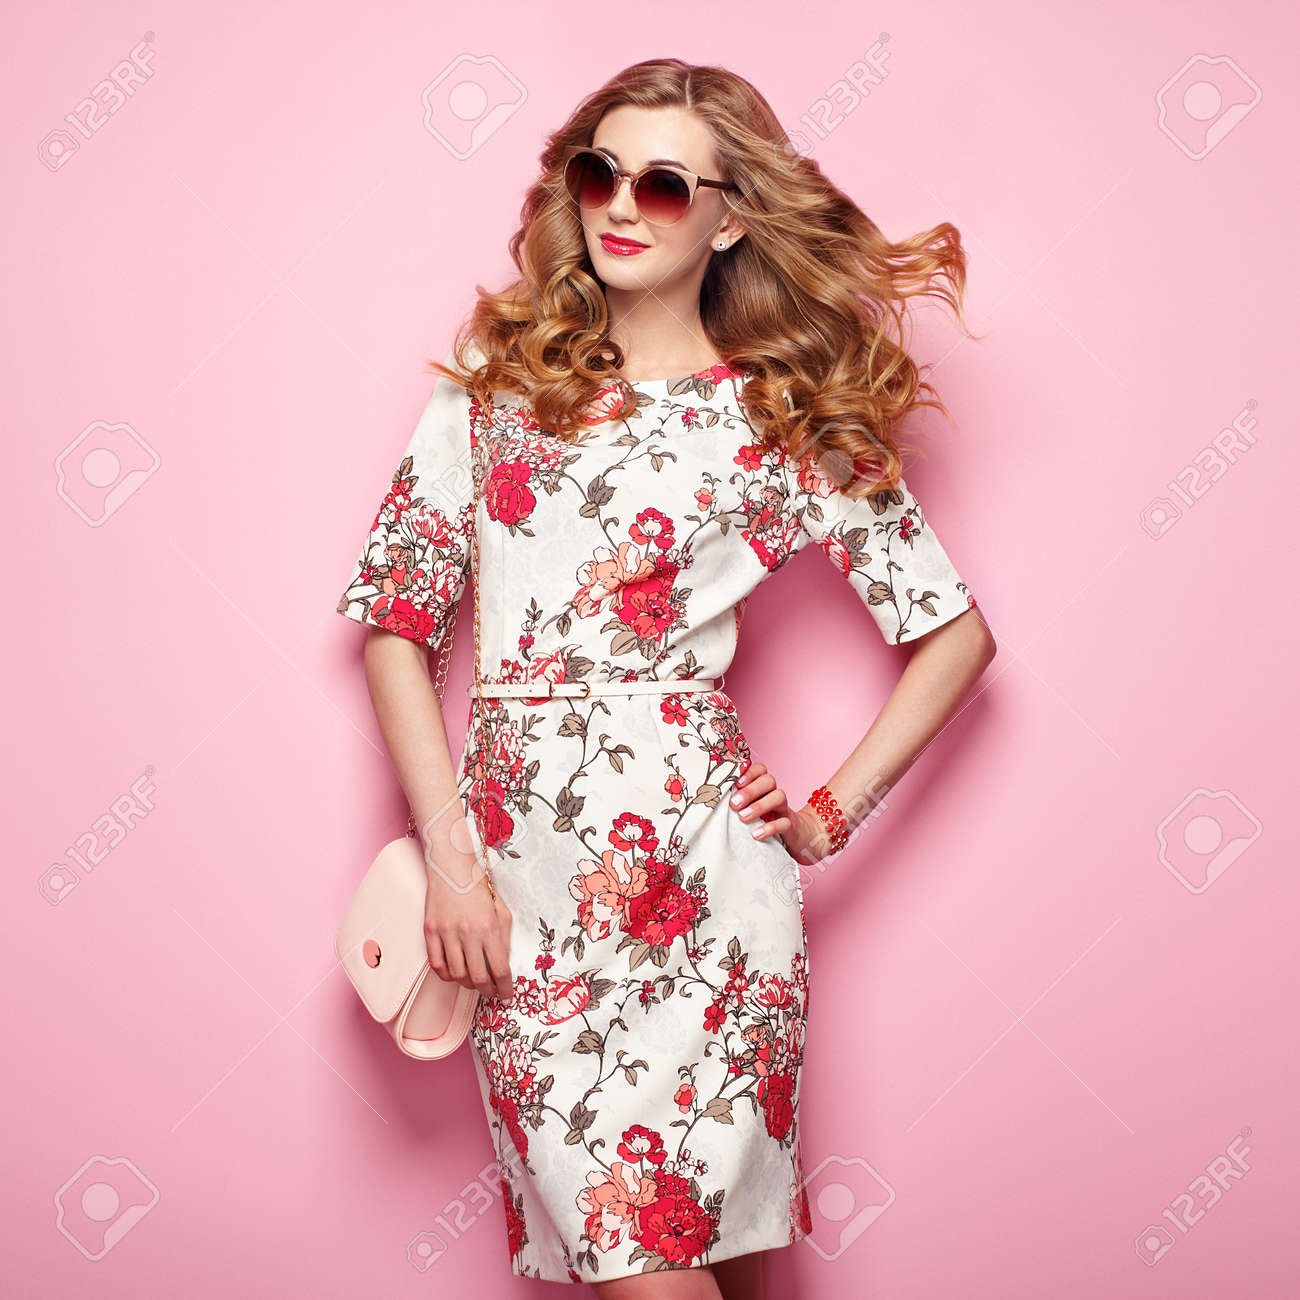 Blonde young woman in floral spring summer dress. Girl posing on a pink background. Summer floral outfit. Stylish wavy hairstyle. Fashion photo. Glamour lady in sunglasses with handbag - 76500420